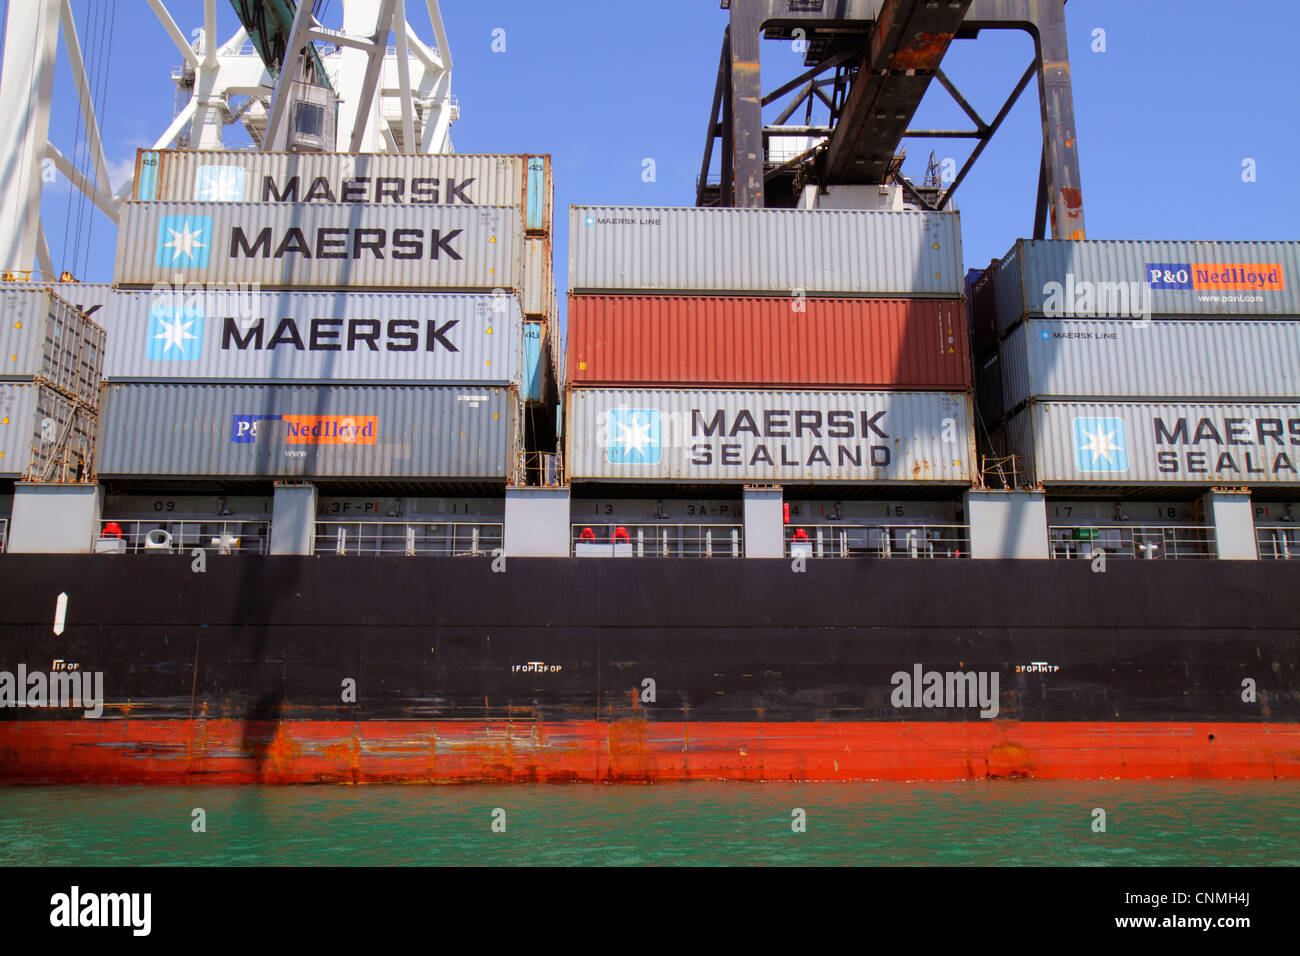 Miami Florida Biscayne Bay Port of Miami Dodge Island cargo container ship cranes Maersk Sealand - Stock Image